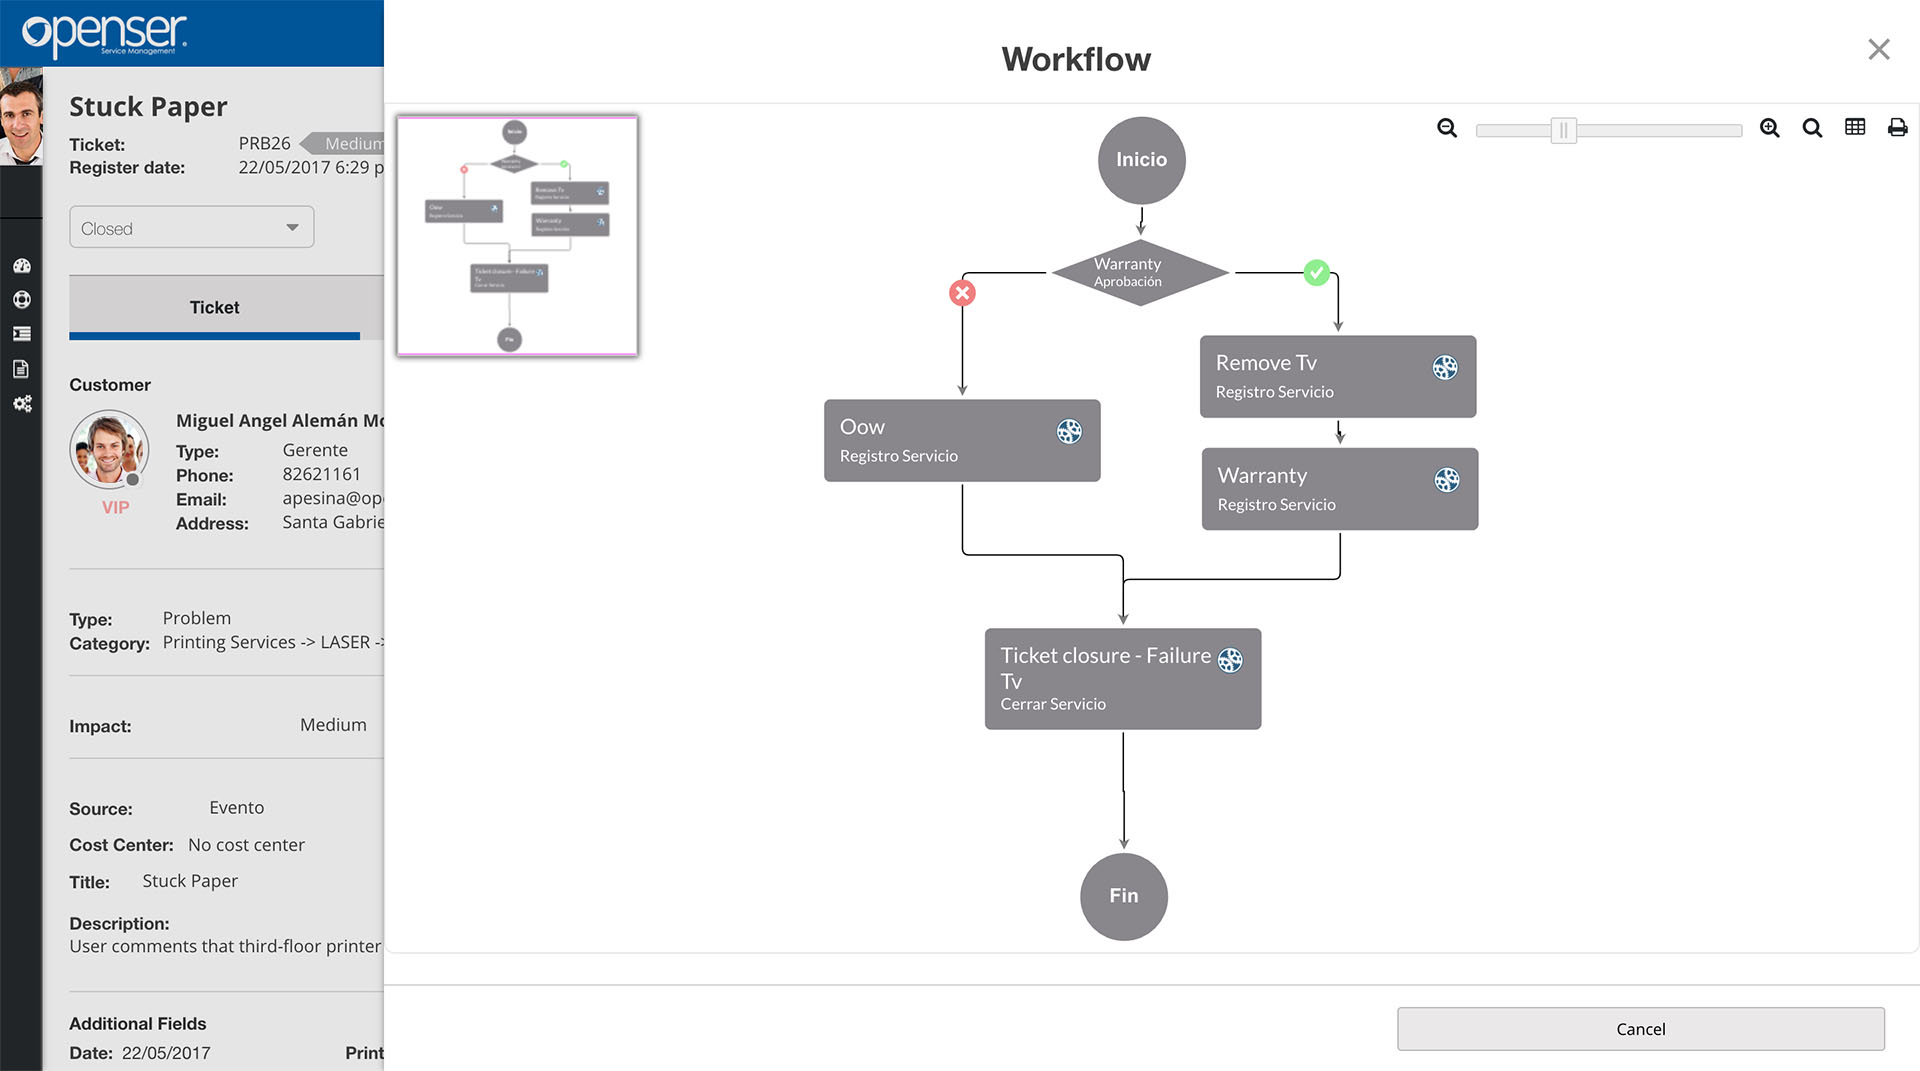 itsm-software-workflow